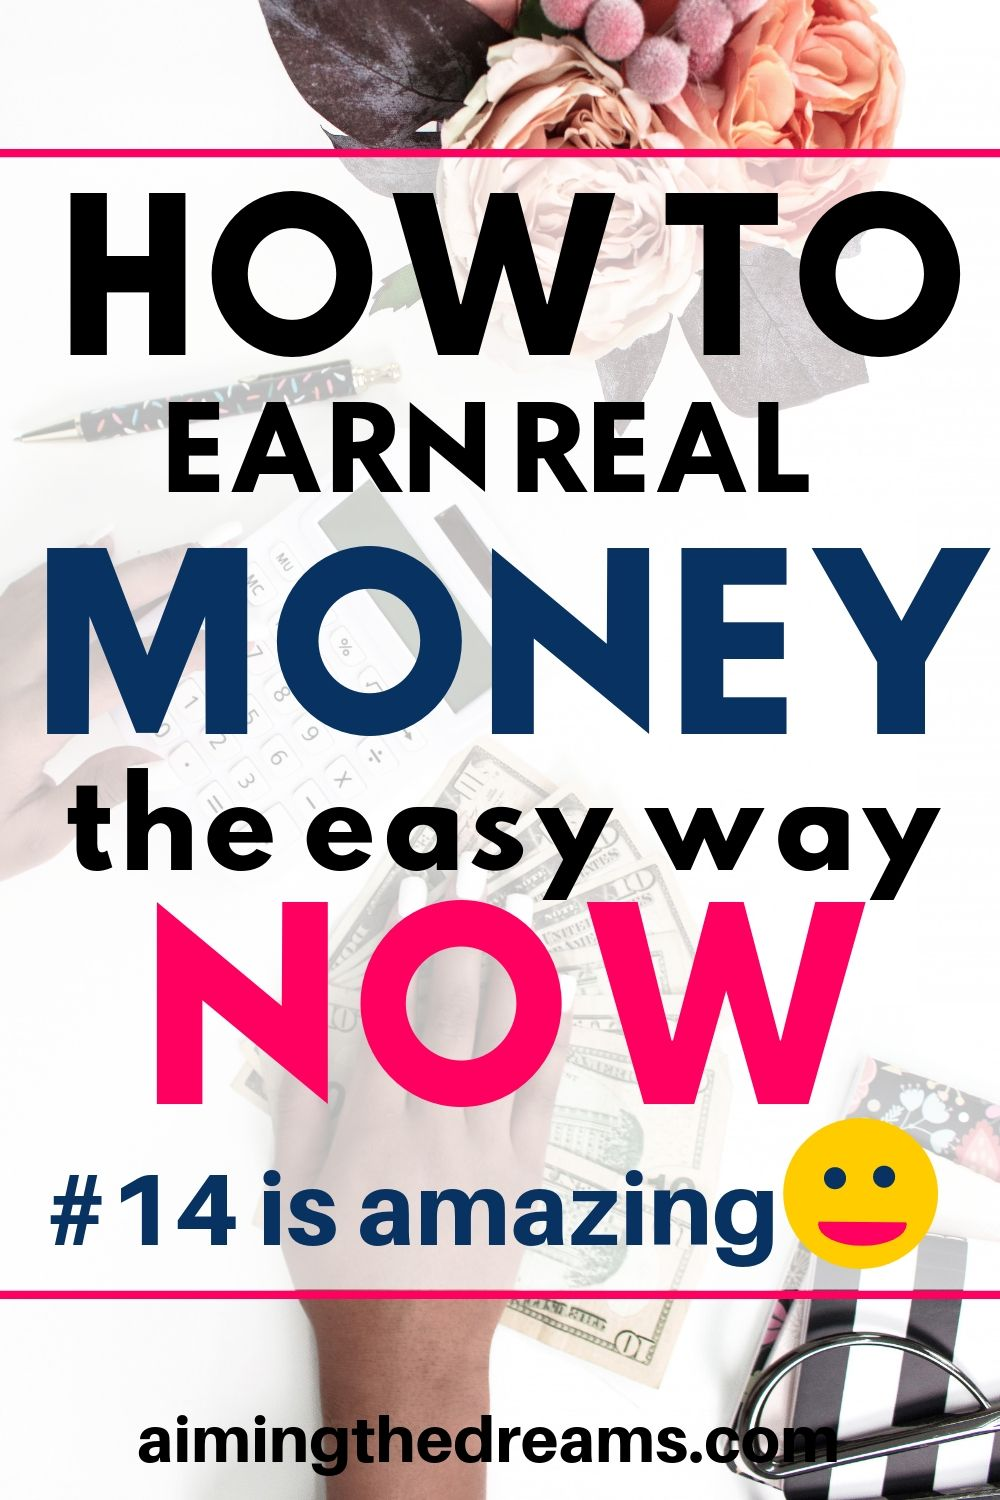 How to earn real income the easy way now. These side hustles and side income ideas let you work from home and earn make money